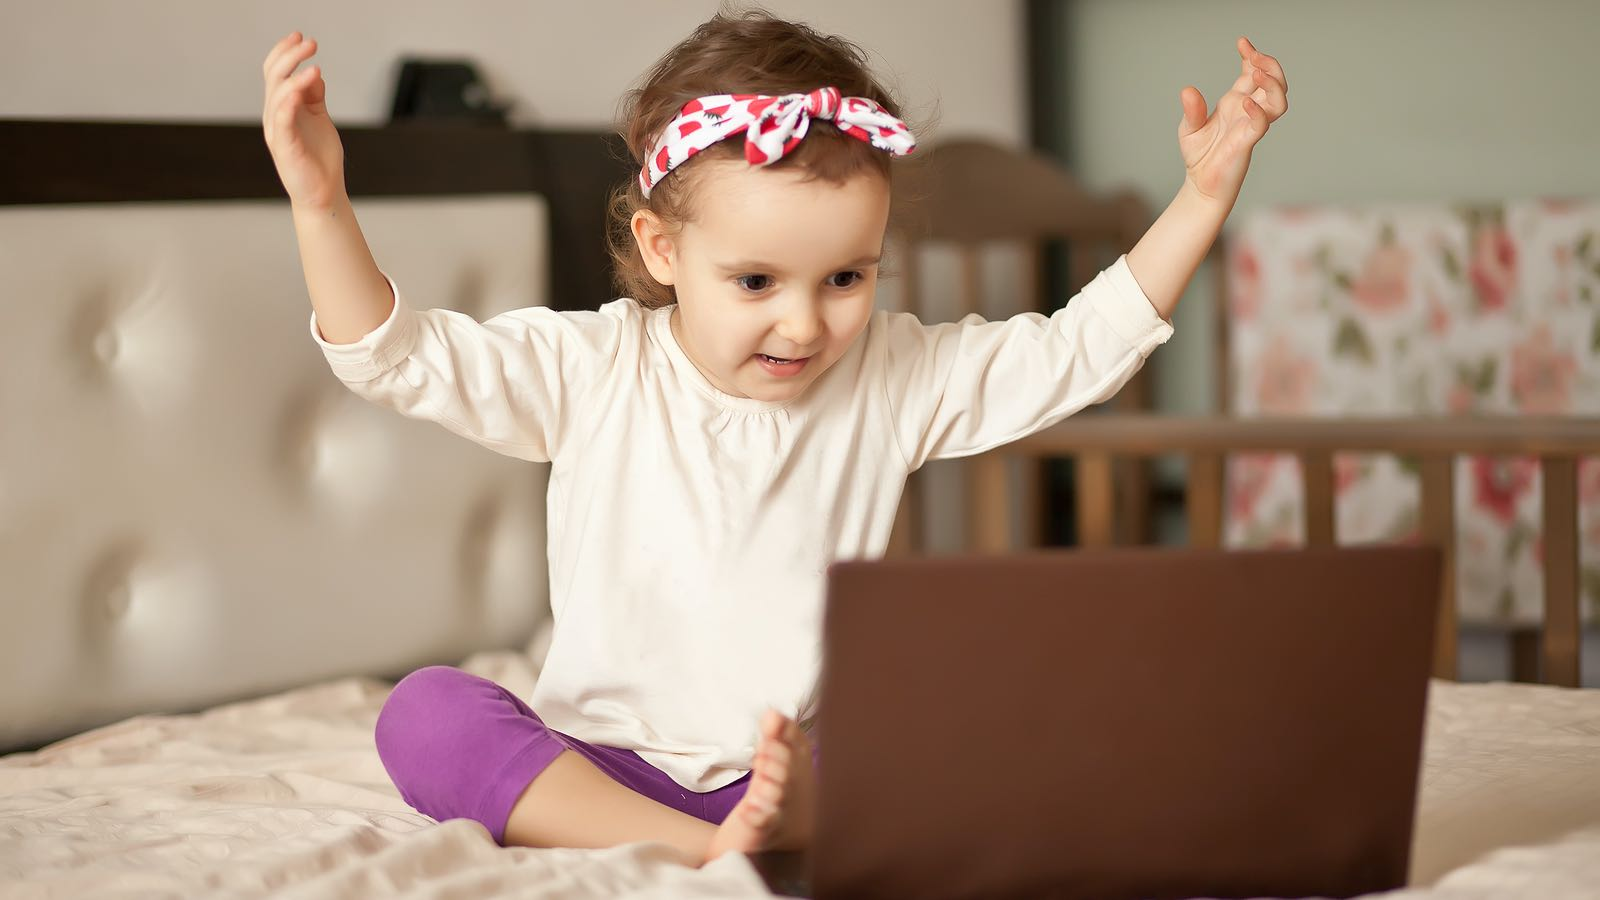 Introduction to Telehealth and Paediatrics : Exploring the application of digital health care when providing physiotherapy to children